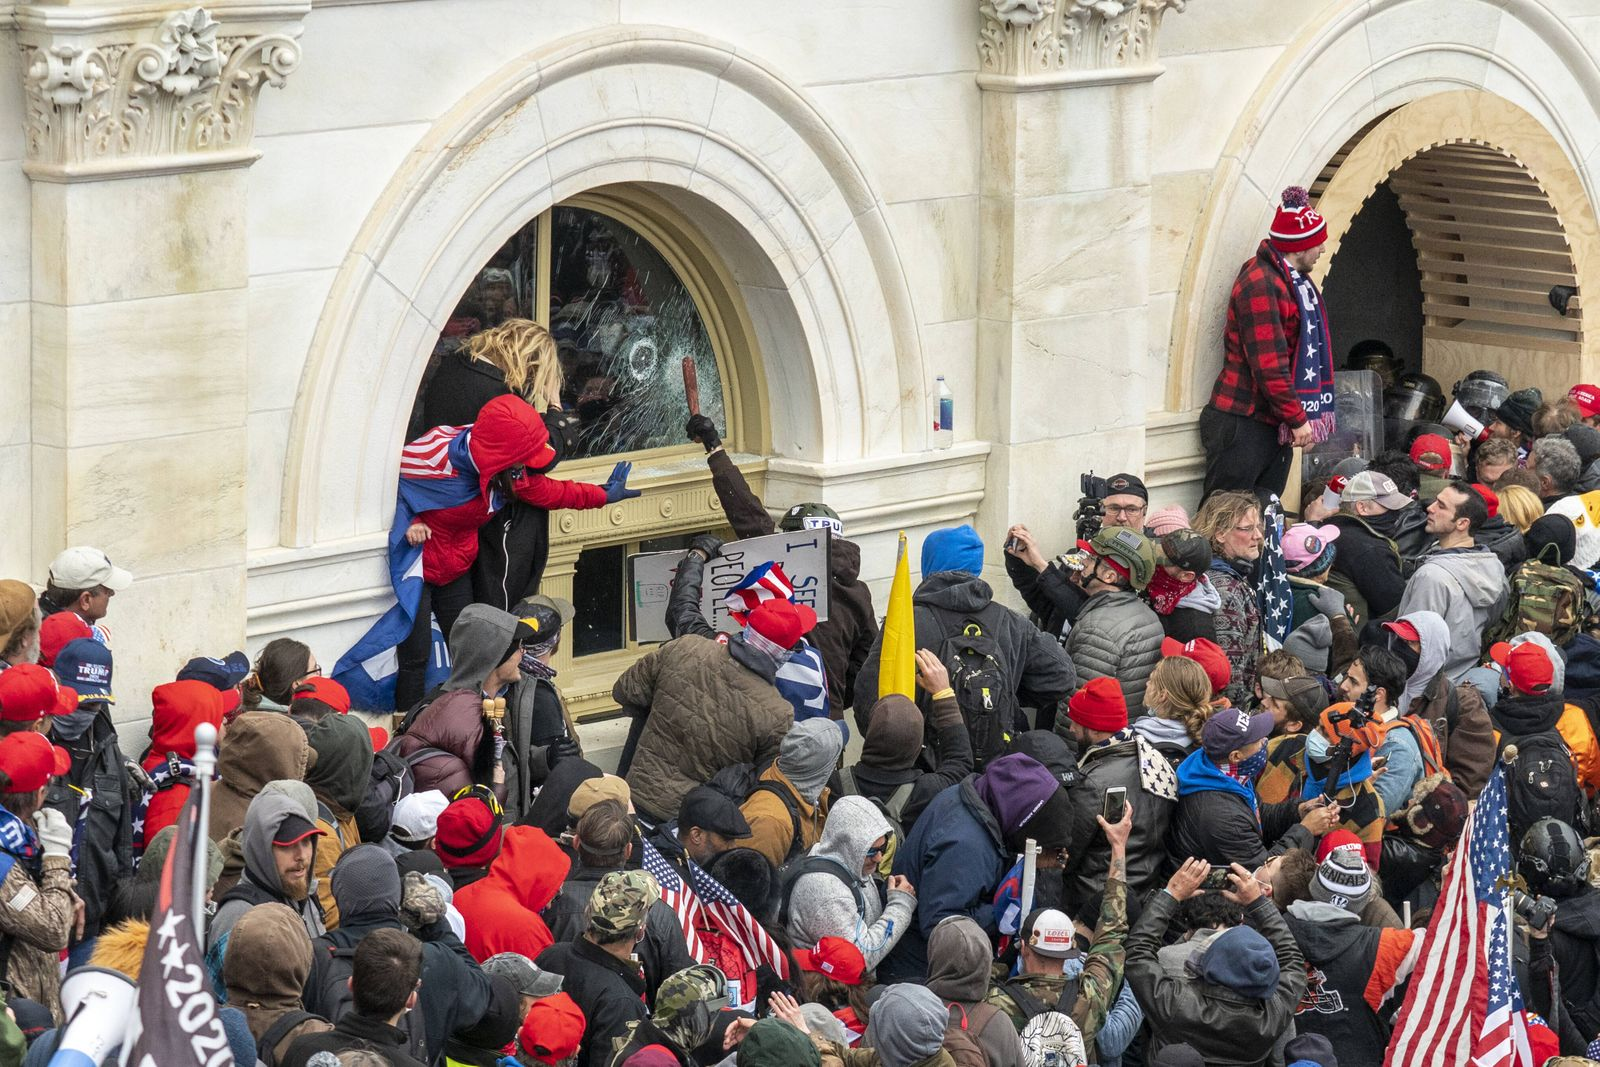 Pro-Trump rioters breach the security perimeter and penetrate the U.S. Capitol to protest against the Electoral College